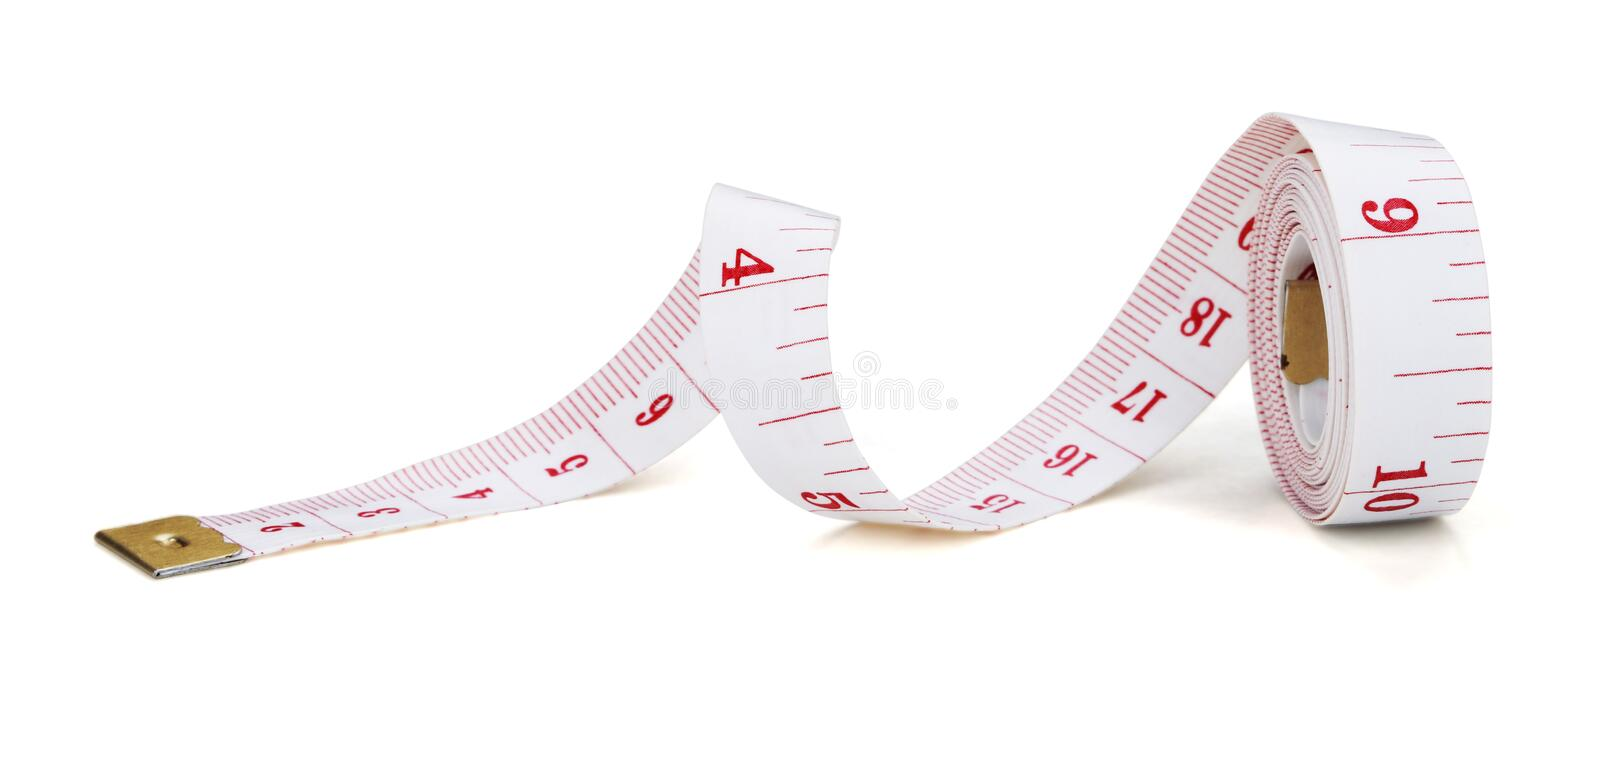 Measuring tape. Isolated on white background stock photo